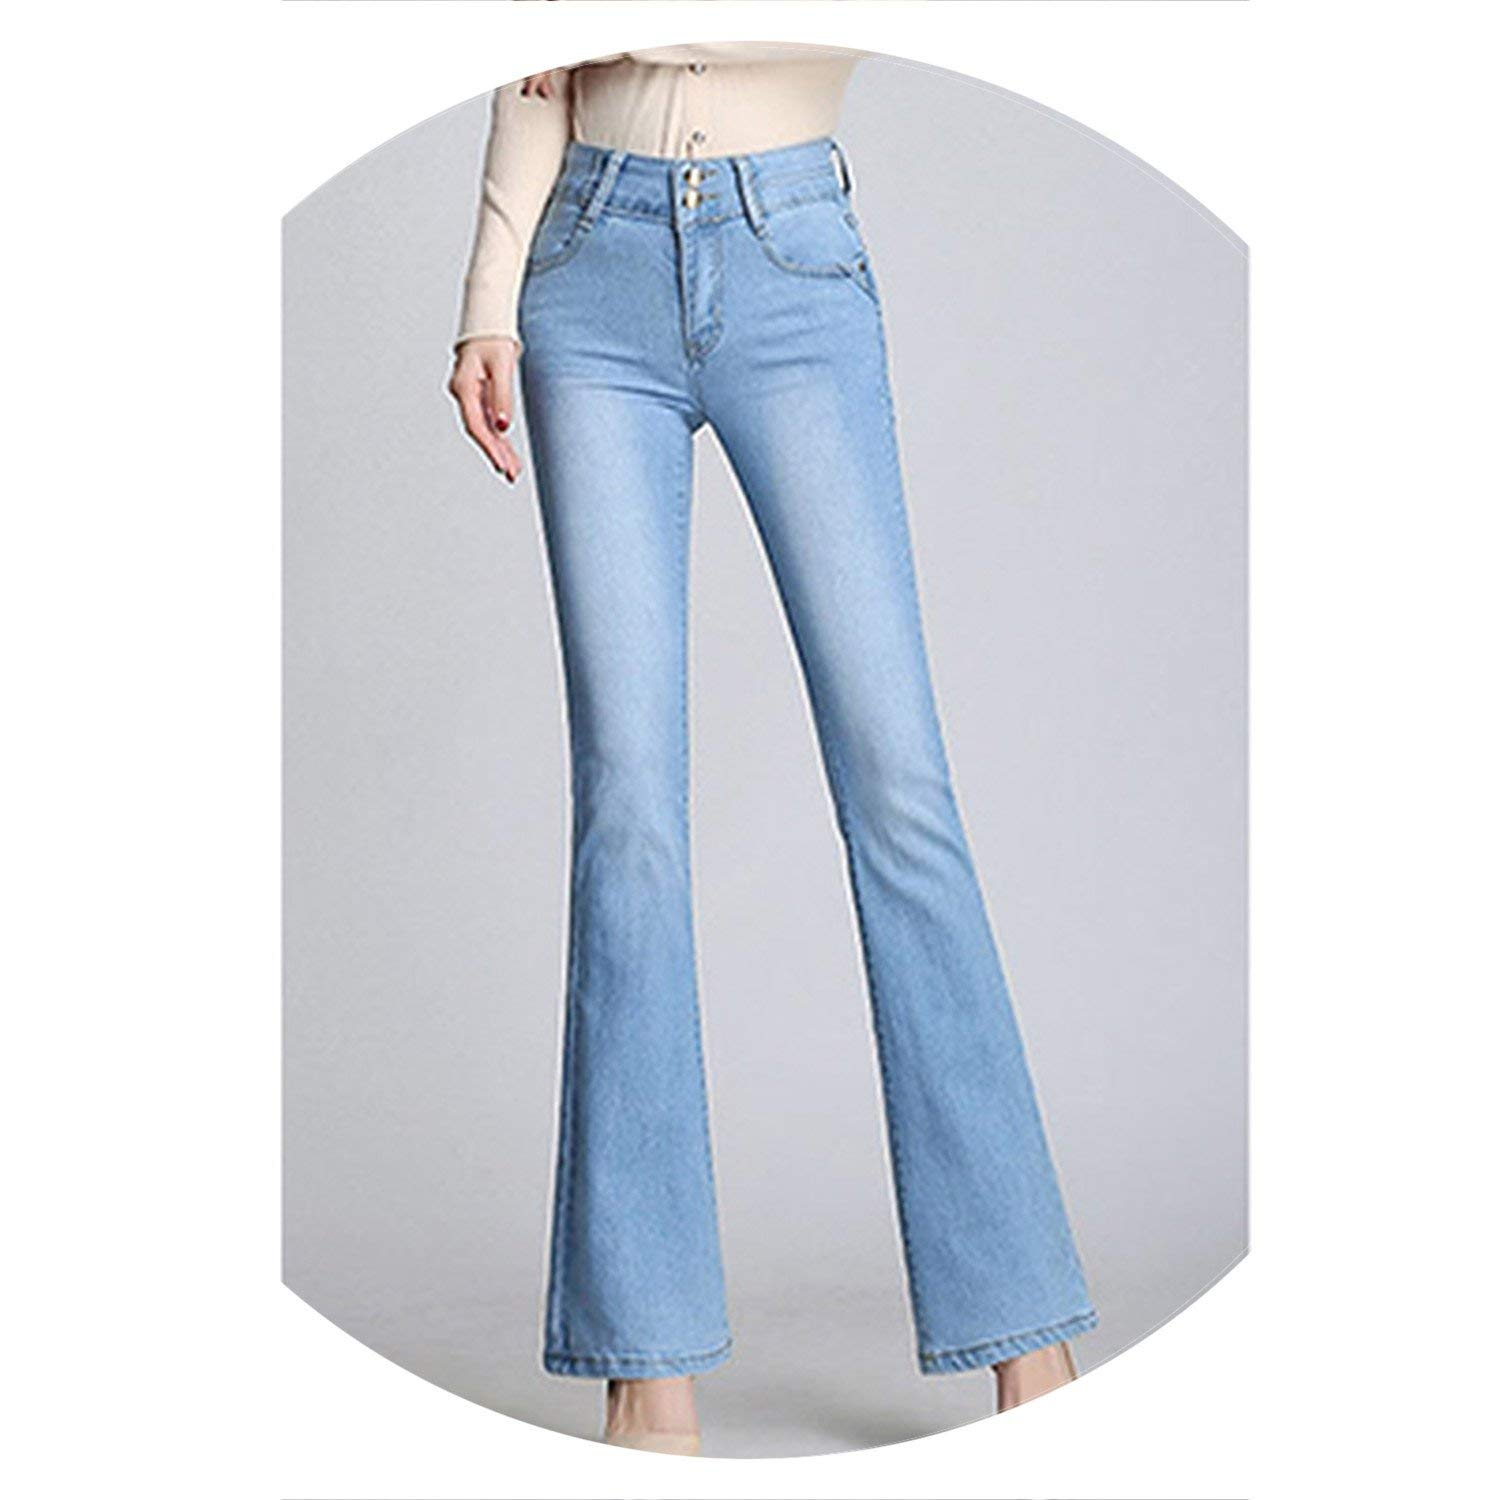 Light bluee colorfulspace Classic with High Waist Denim Jeans for Women Vintage Slim Mom Style Jeans Woman Denim Pants